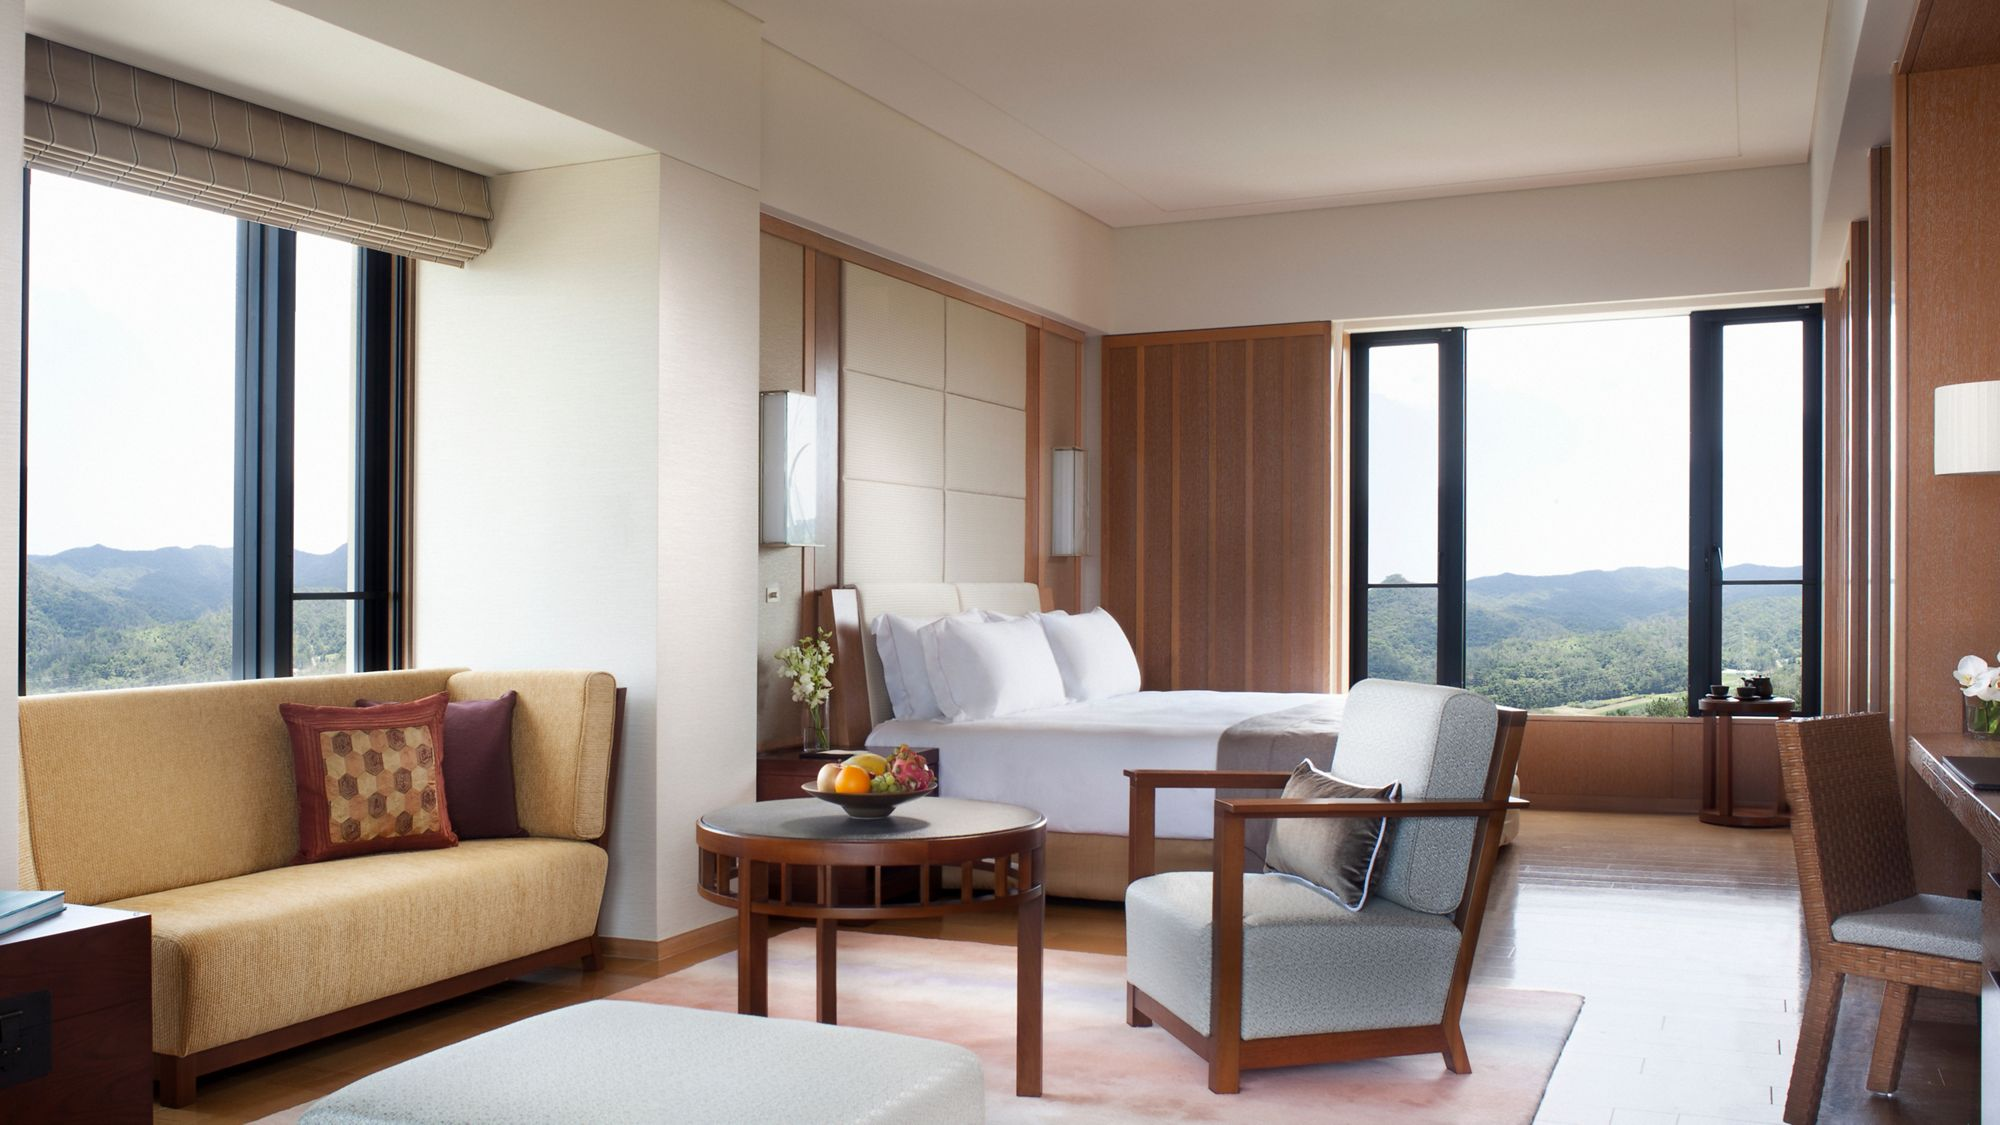 Inside the Premier Deluxe Room with floor-to-ceiling sliding glass doors and views of the sea